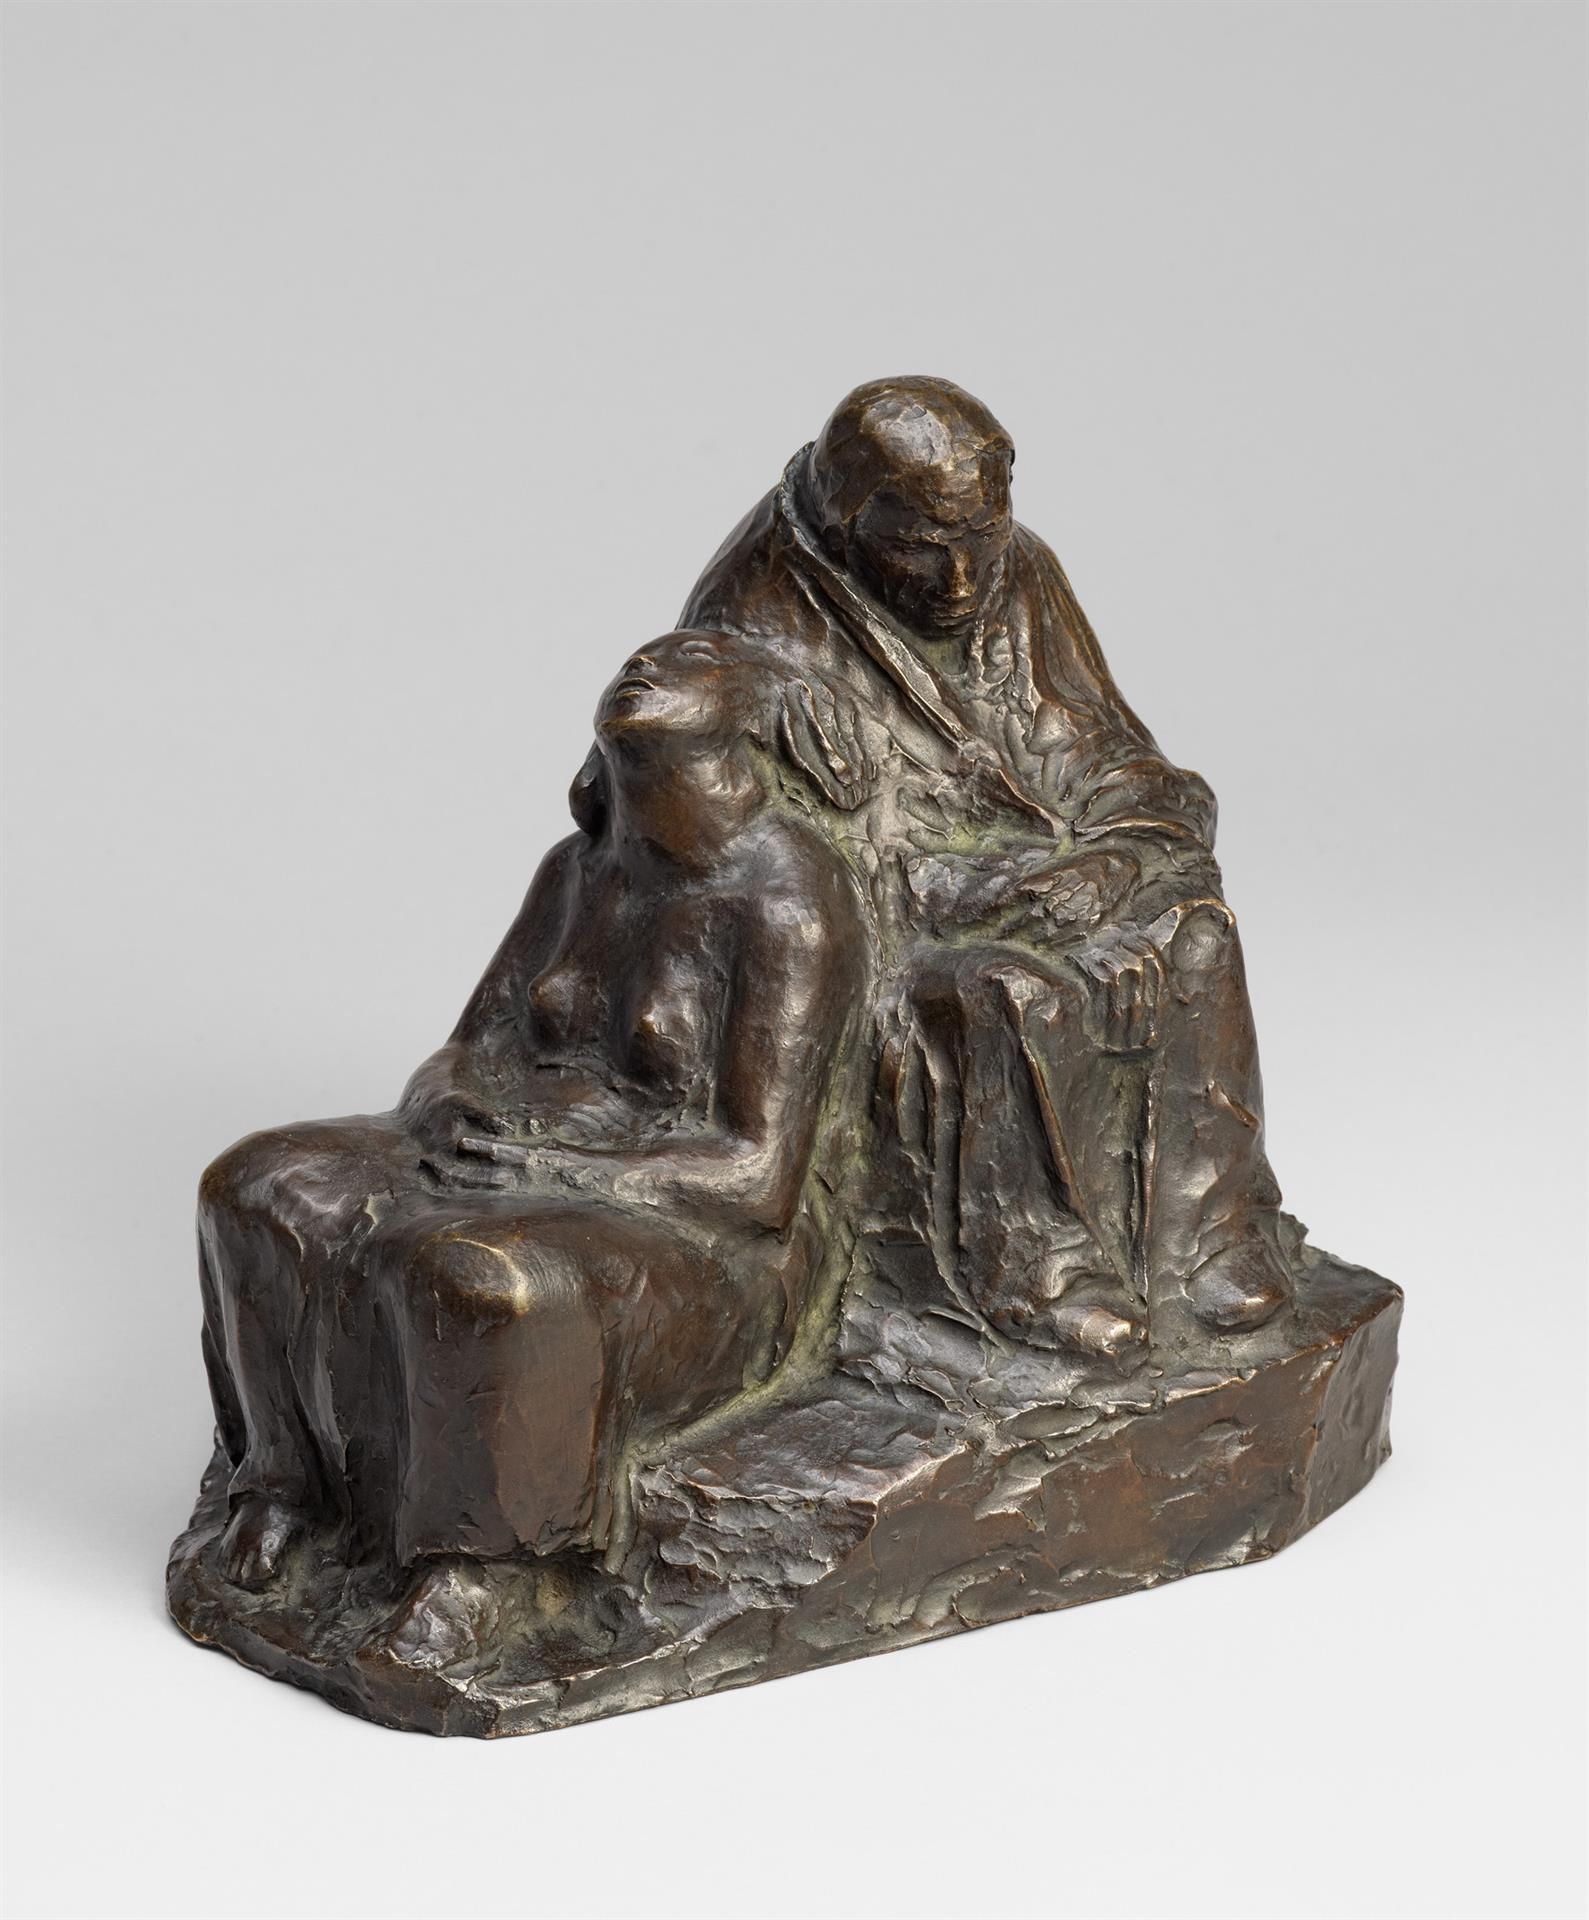 Käthe Kollwitz, Two Soldiers' Wives, waiting, 1941-1943, bronze, Seeler 43 I.B.1., Cologne Kollwitz Collection © Käthe Kollwitz Museum Köln